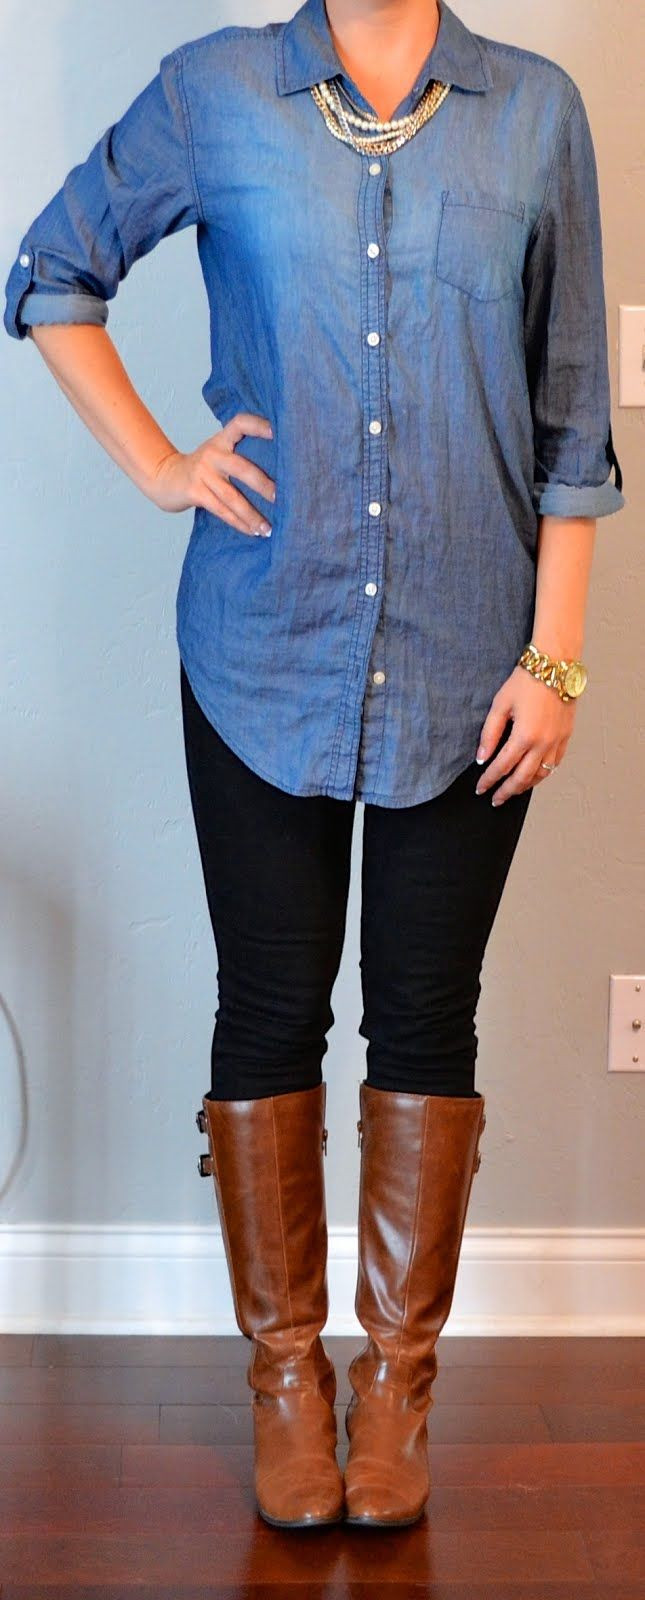 Chambray shirt (Old Navy), Black skinny jeans (Target), Brown boots (Macys) - peral necklace (Ann Taylor) & Michael Kors gold link watch (Nordstrom)...comfy and casual...my specialty